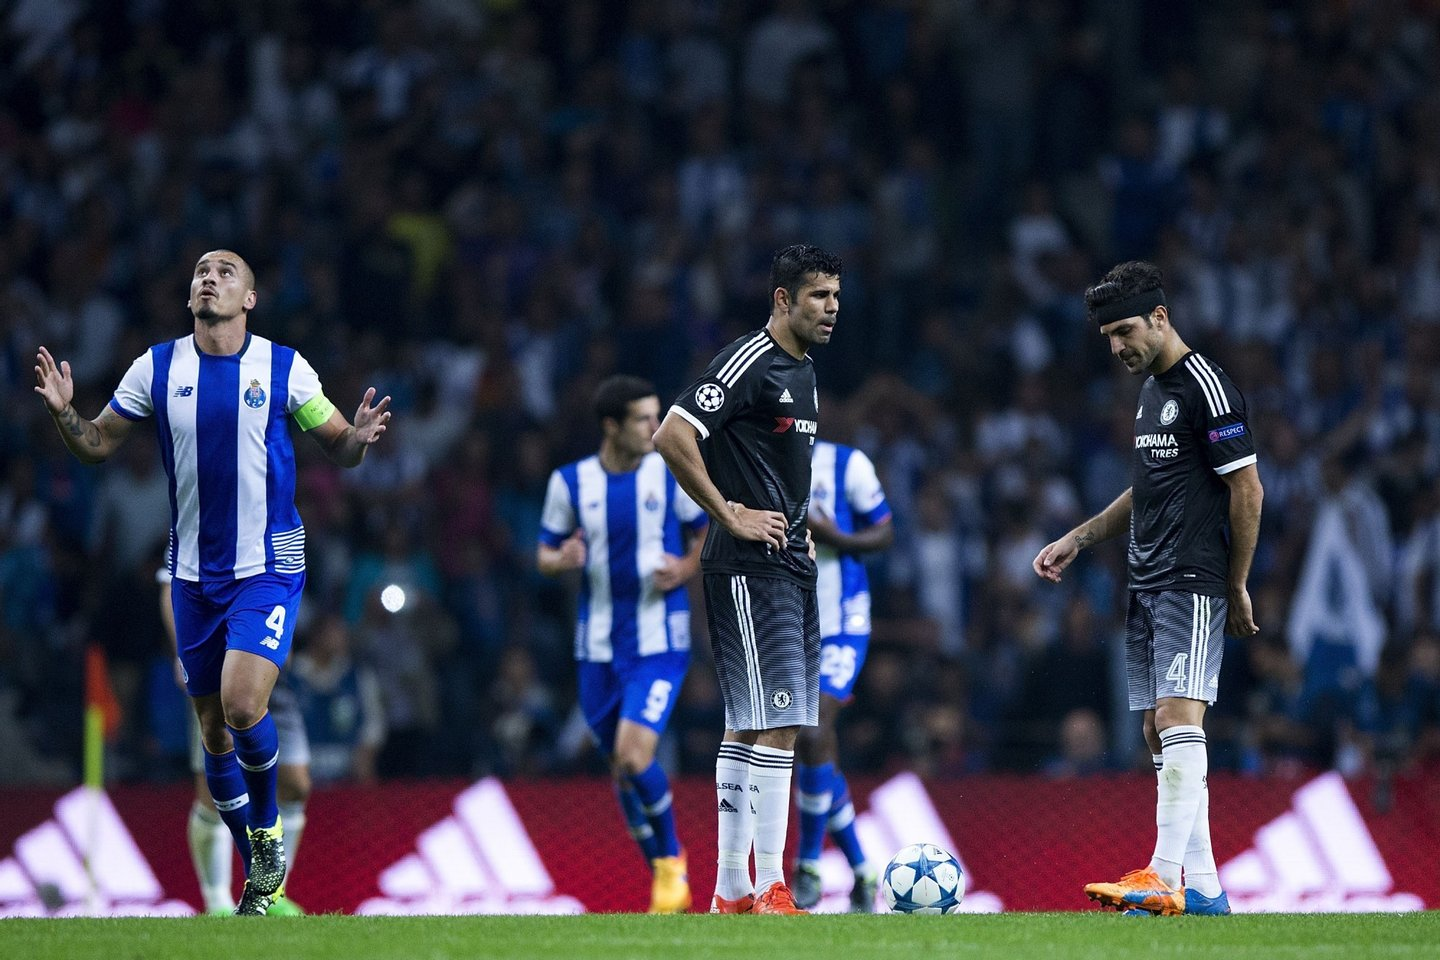 PORTO, PORTUGAL - SEPTEMBER 29: Diego Costa (2ndR) and his teammate Cesc Fabregas (R) react defeated as Maicon Pereira (L) of FC Porto celebrates his team's second goal during the UEFA Champions League Group G match between FC Porto and Chelsea FC at Estadio do Dragao on September 29, 2015 in Porto, Portugal. (Photo by Gonzalo Arroyo Moreno/Getty Images)